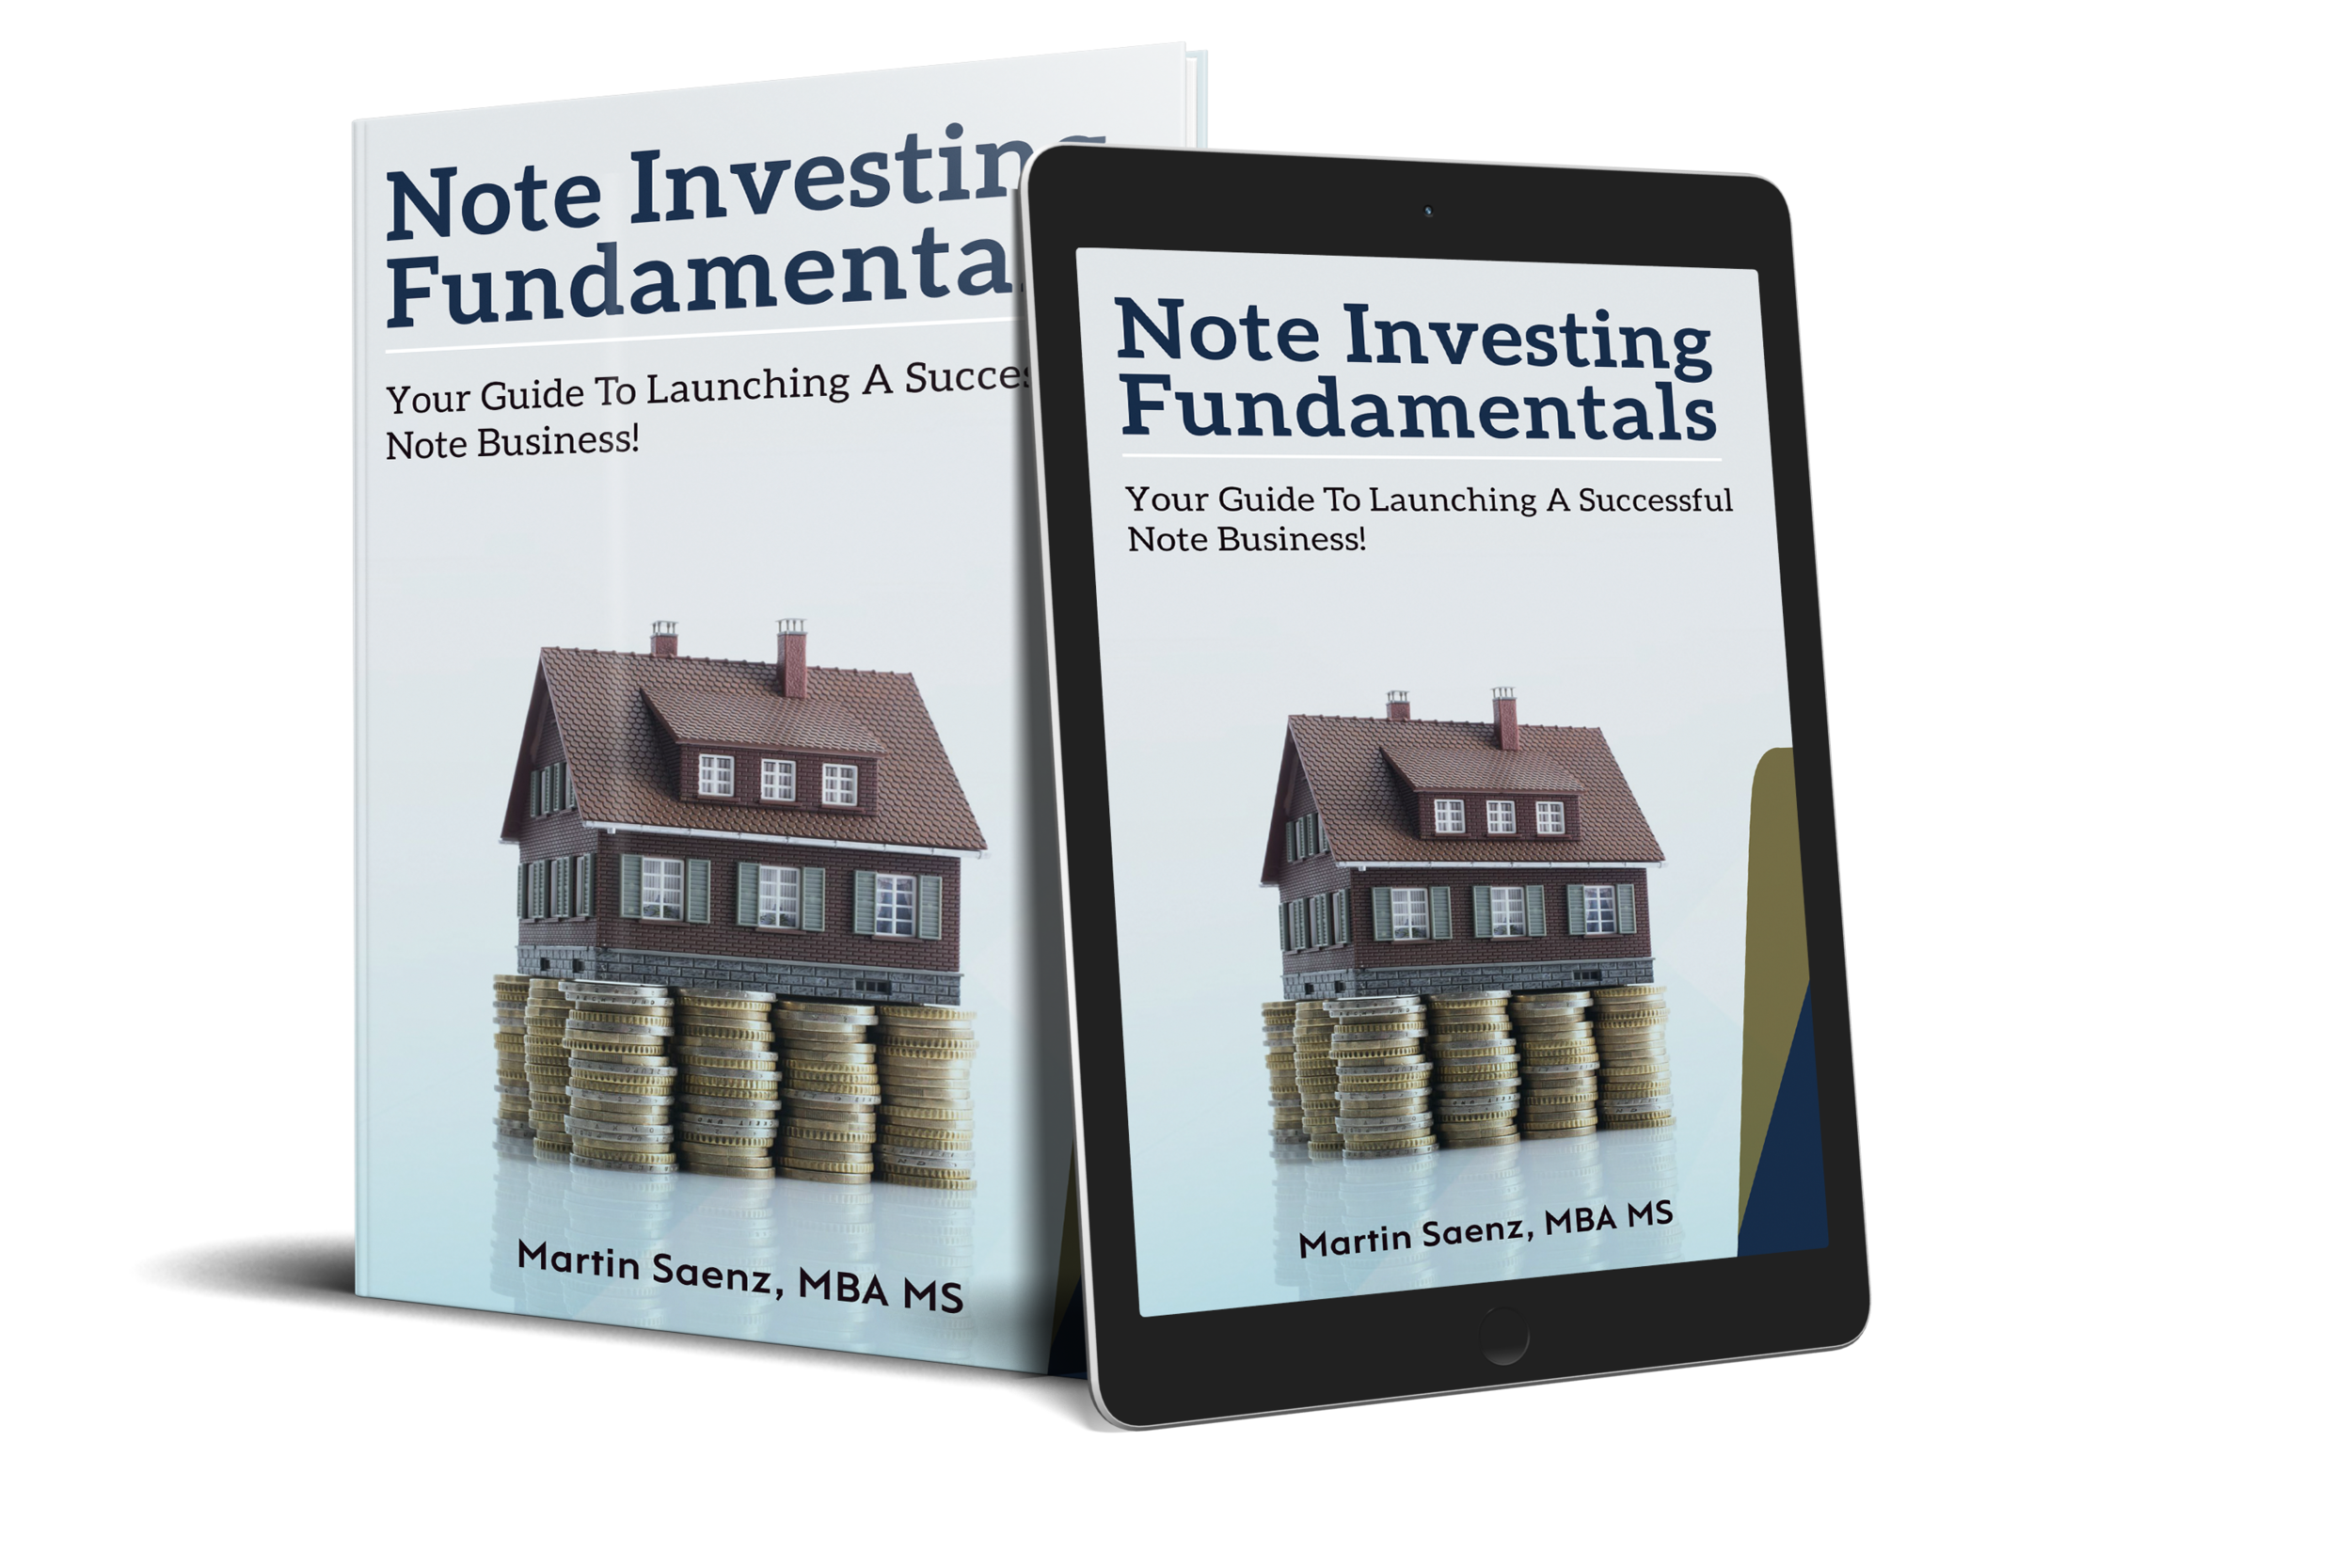 Your Guide to Launching a Successful Note Business! - Learning the Fundamentals is Key to Your Success in the Note Business. This Book Will Teach You That Deal Flow is the Real King — Not CashREAD MORE AND PURCHASE NOW